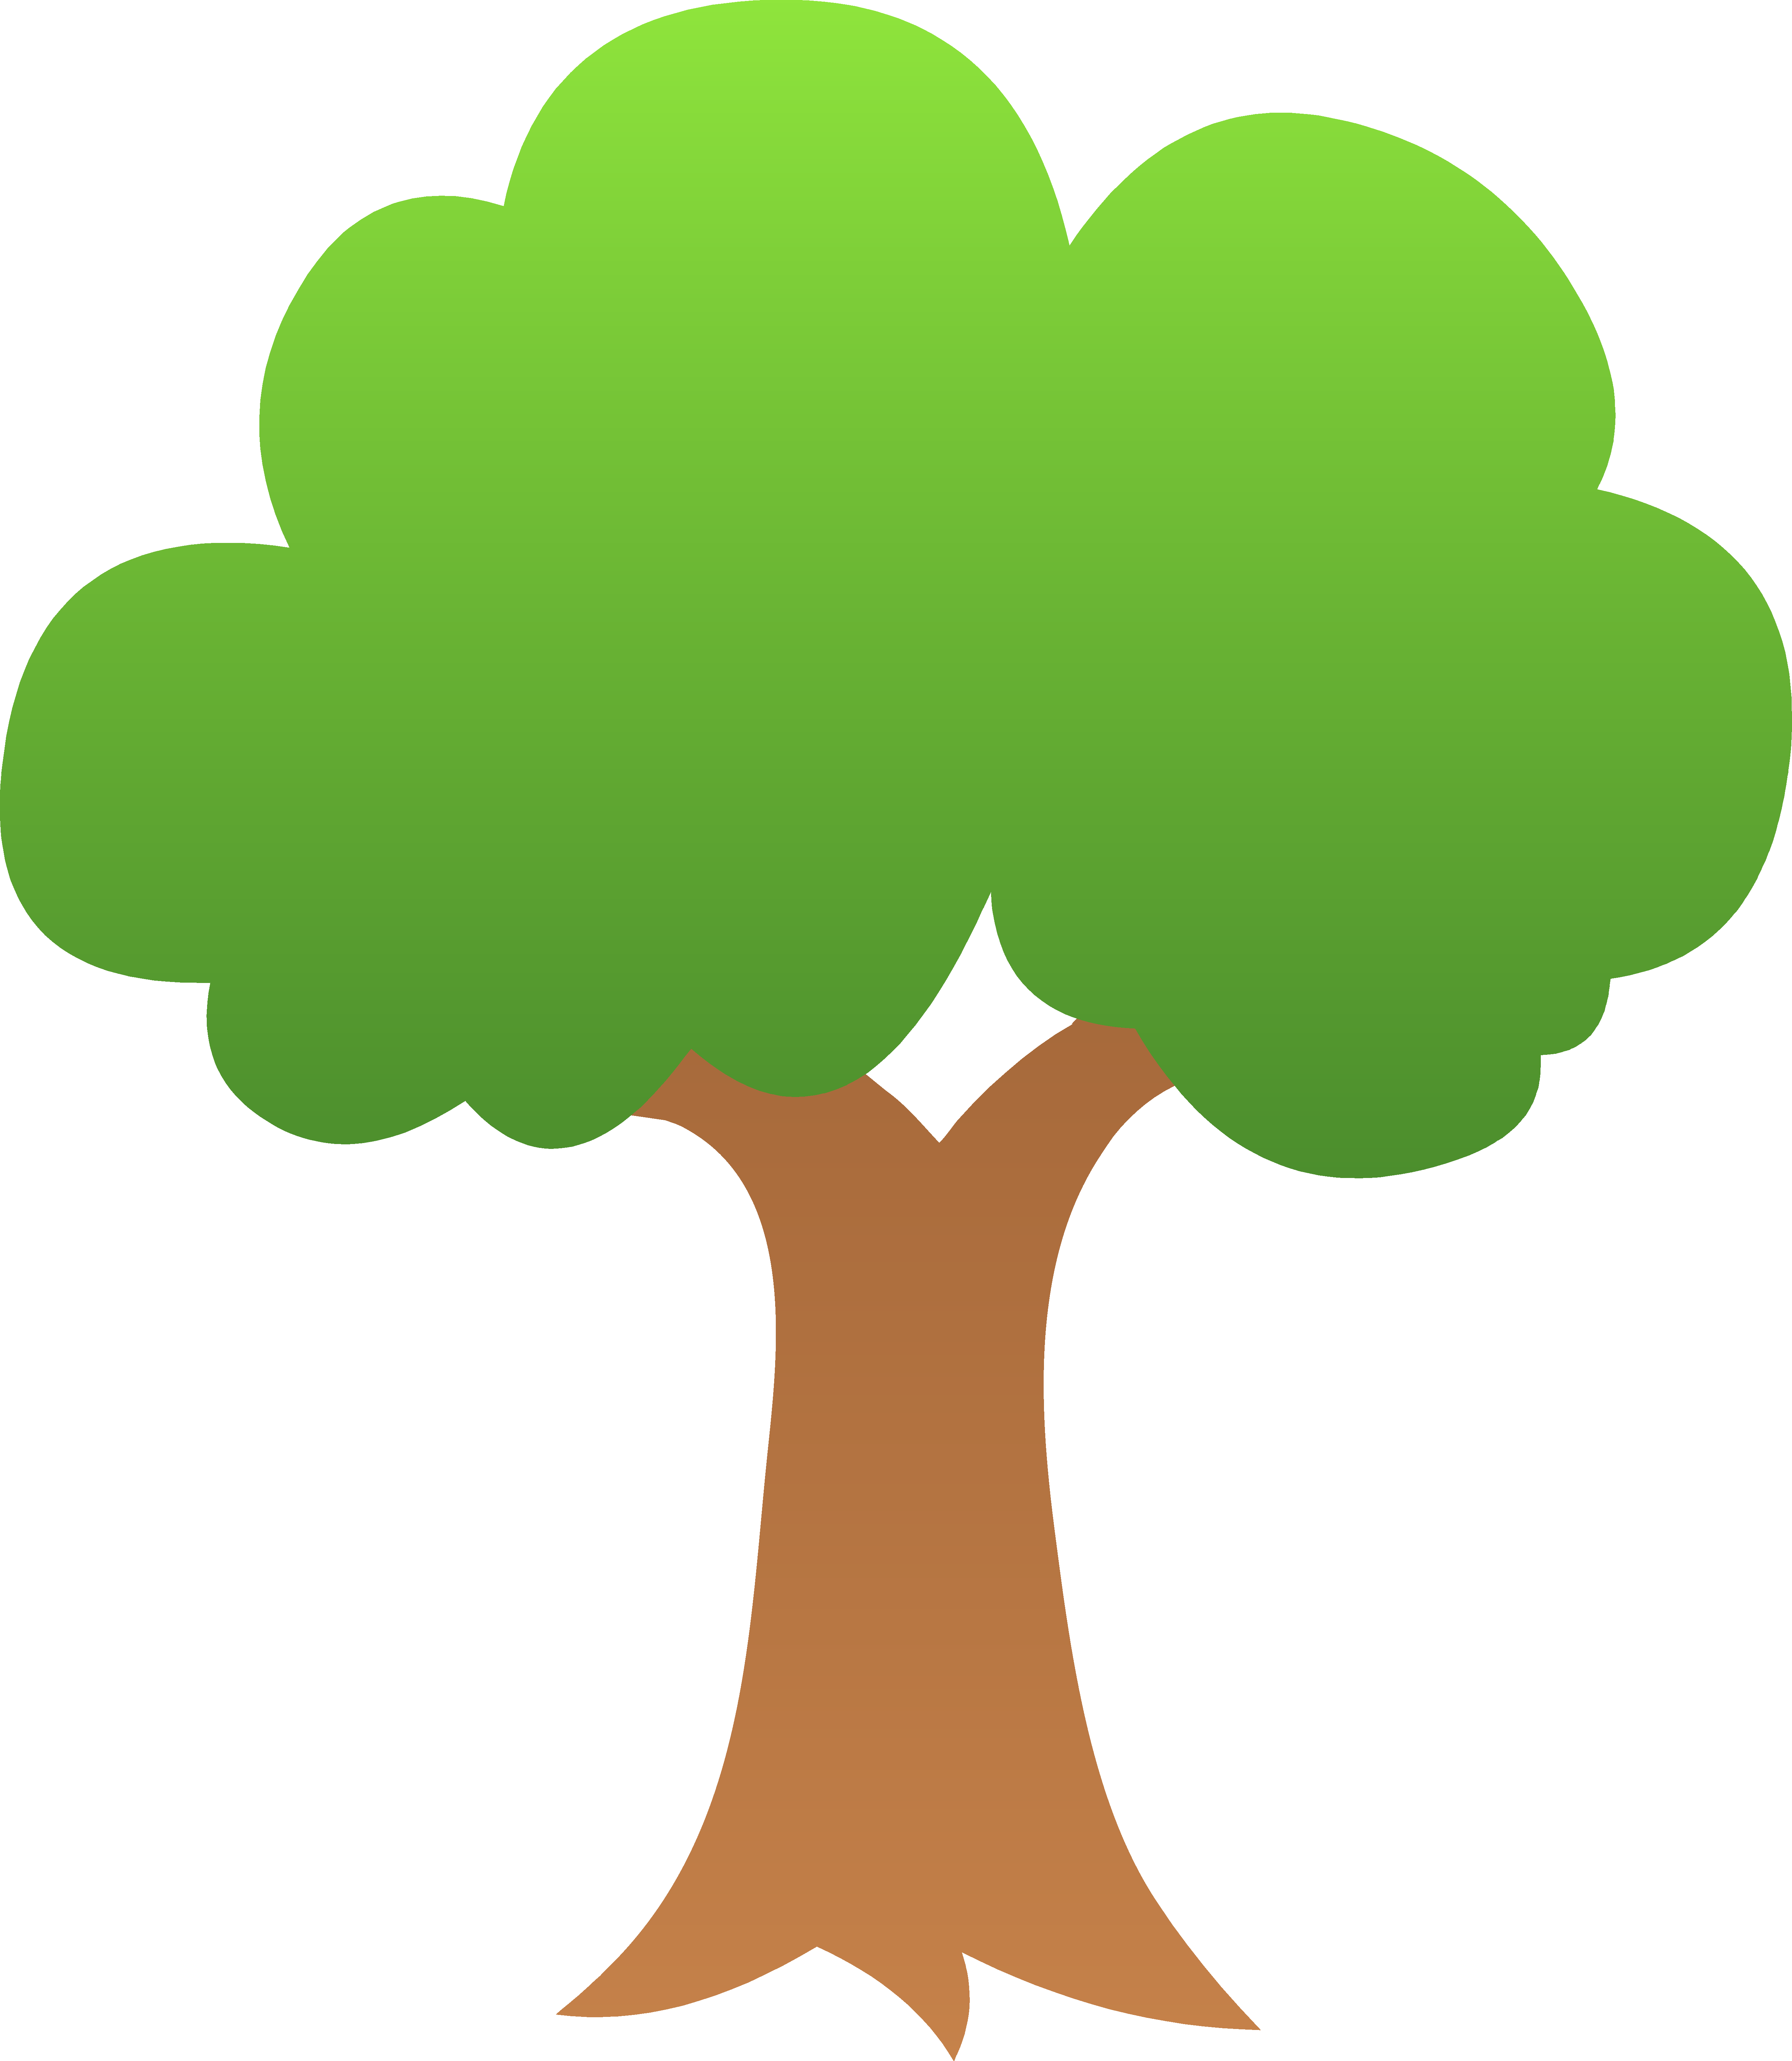 download Break clipart wood. Tree tiny green shaded.